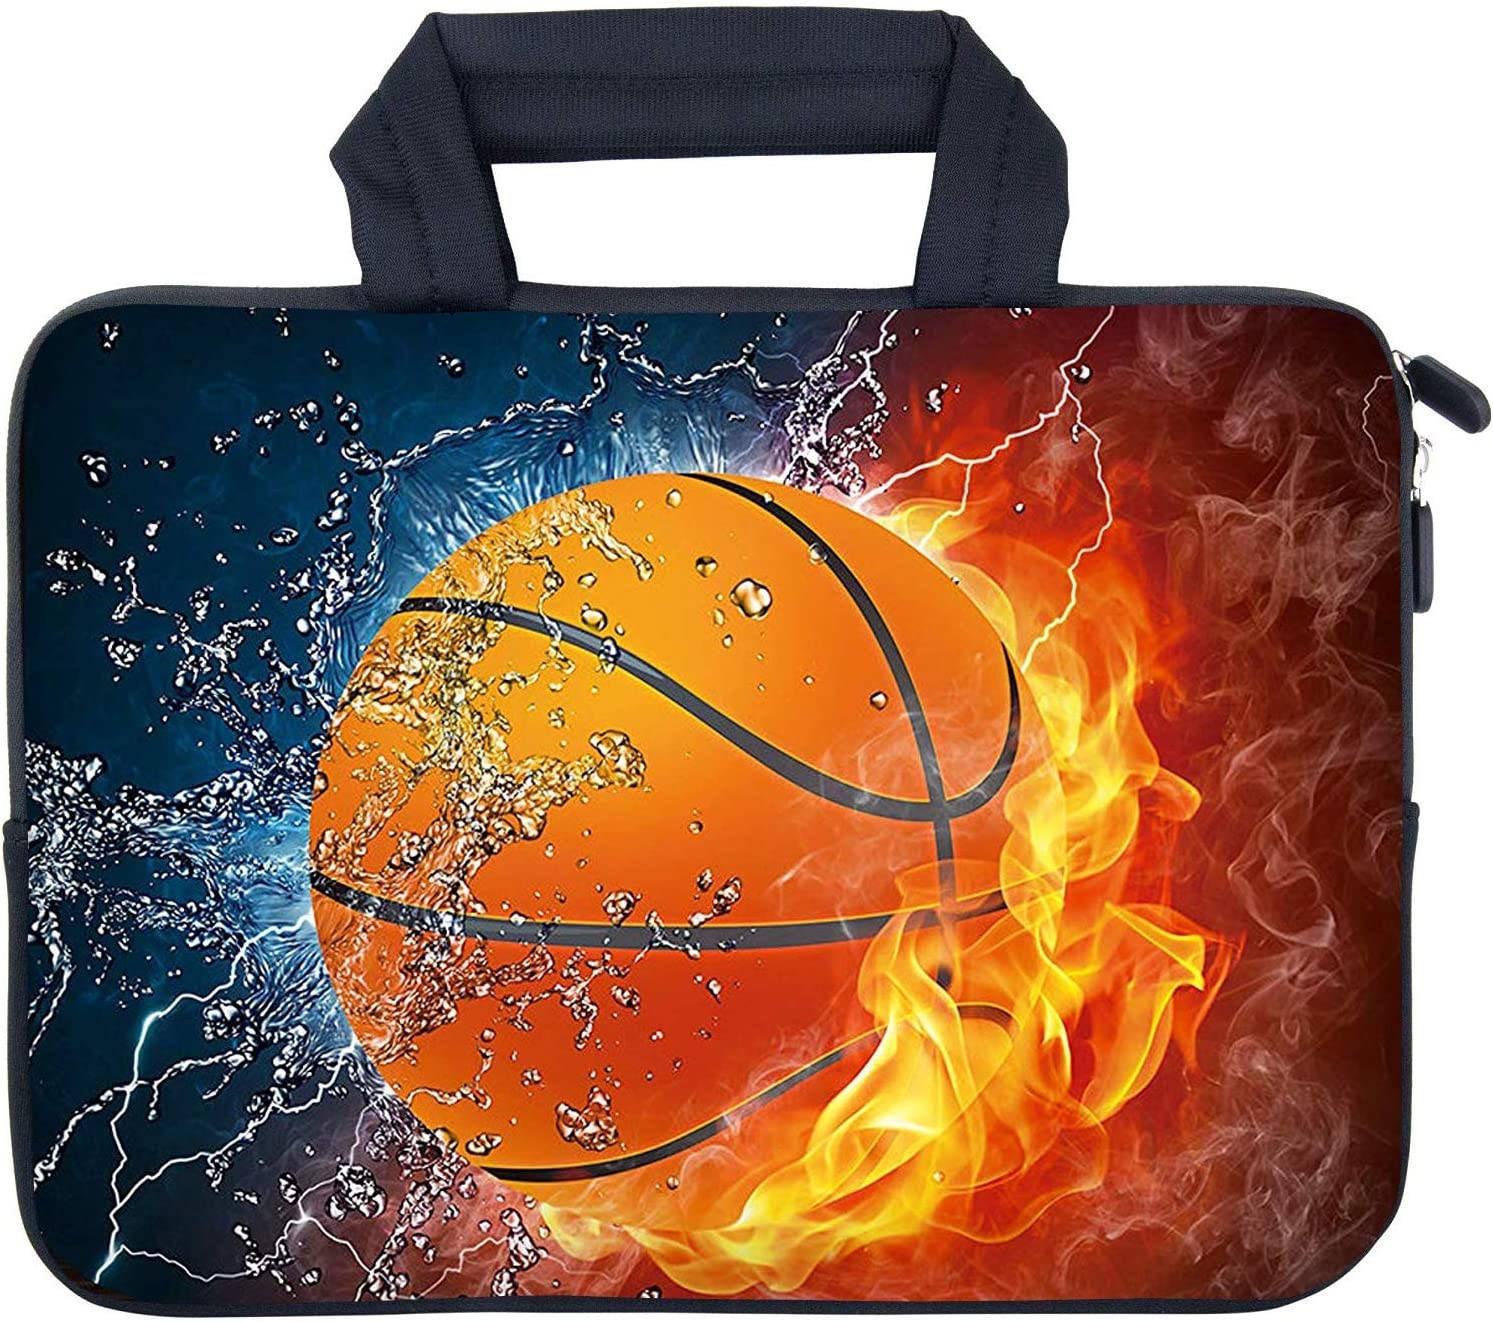 """AMARY 11.6"""" 12"""" 12.1"""" 12.5 inch Laptop case Neoprene Notebook Carrying Pouch Chromebook Sleeve Ultrabook Case Tablet Cover Fit Apple MacBook Air HP DELL Lenovo Asus Samsung (Hot Basketball)"""